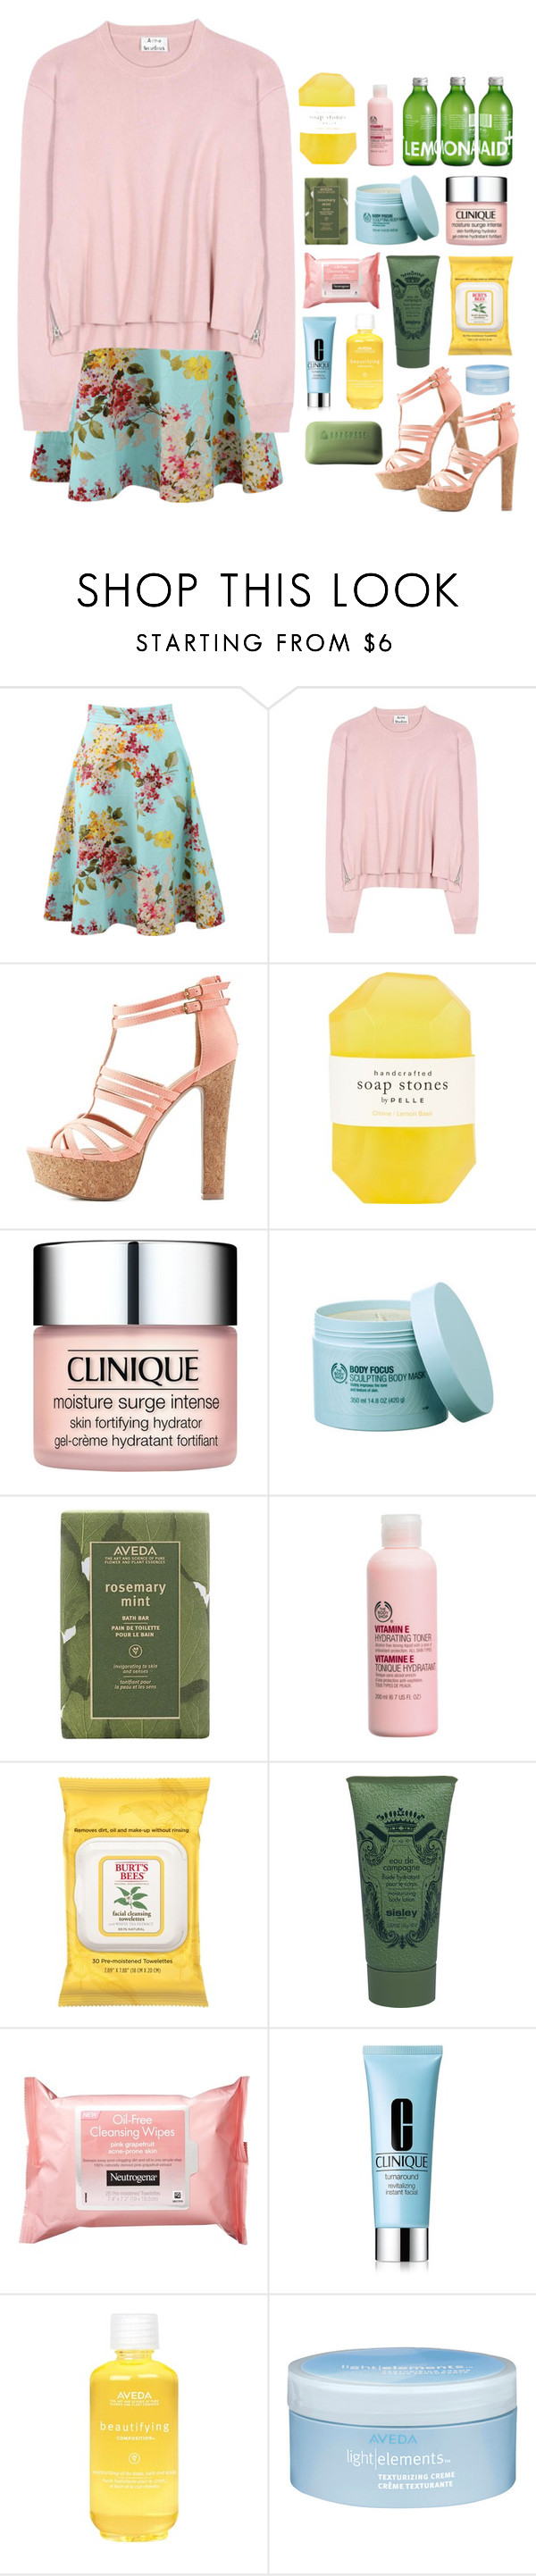 """""""❀Summer Days.❀"""" by pasteipuke ❤ liked on Polyvore featuring Blumarine, Acne Studios, Charlotte Russe, Pelle, Clinique, The Body Shop, Aveda, Burt's Bees, Sisley Paris and Neutrogena"""